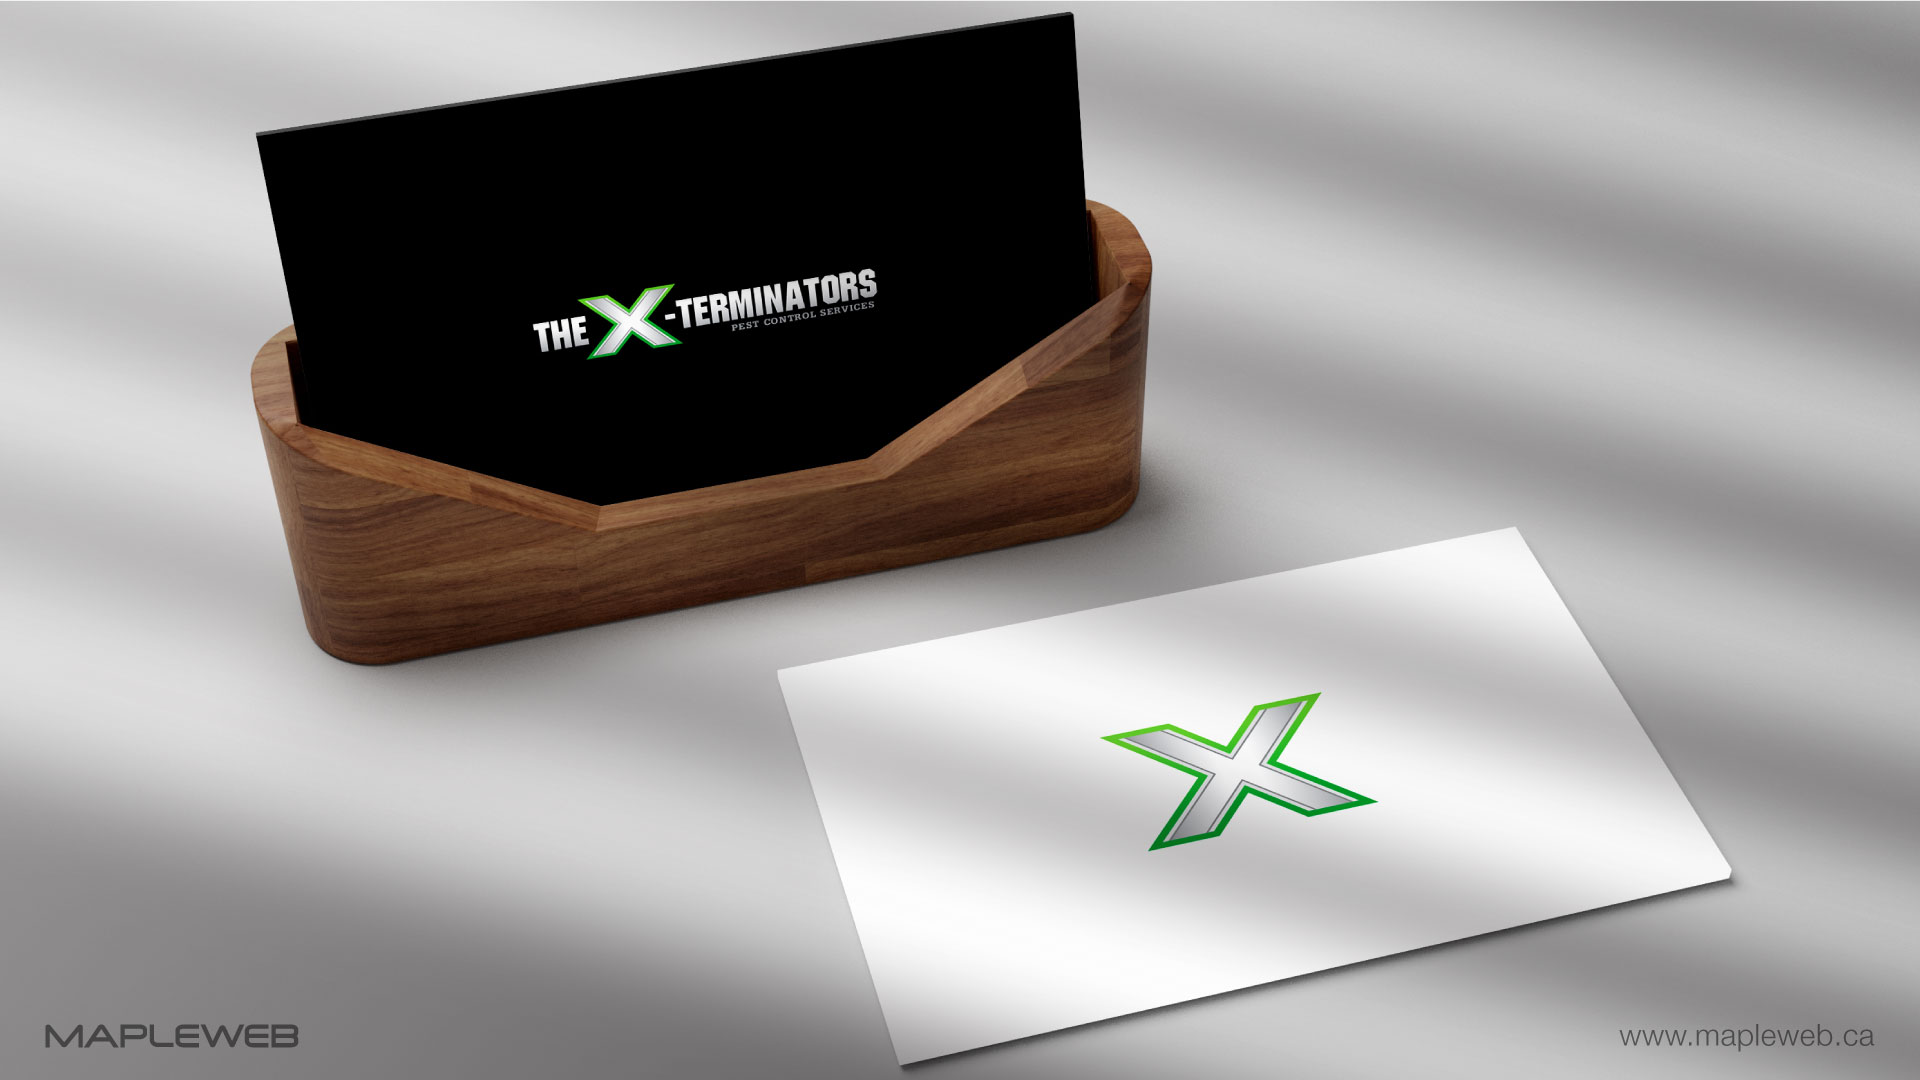 the-x-terminators-brand-logo-design-by-mapleweb-vancouver-canada-business-card-mock